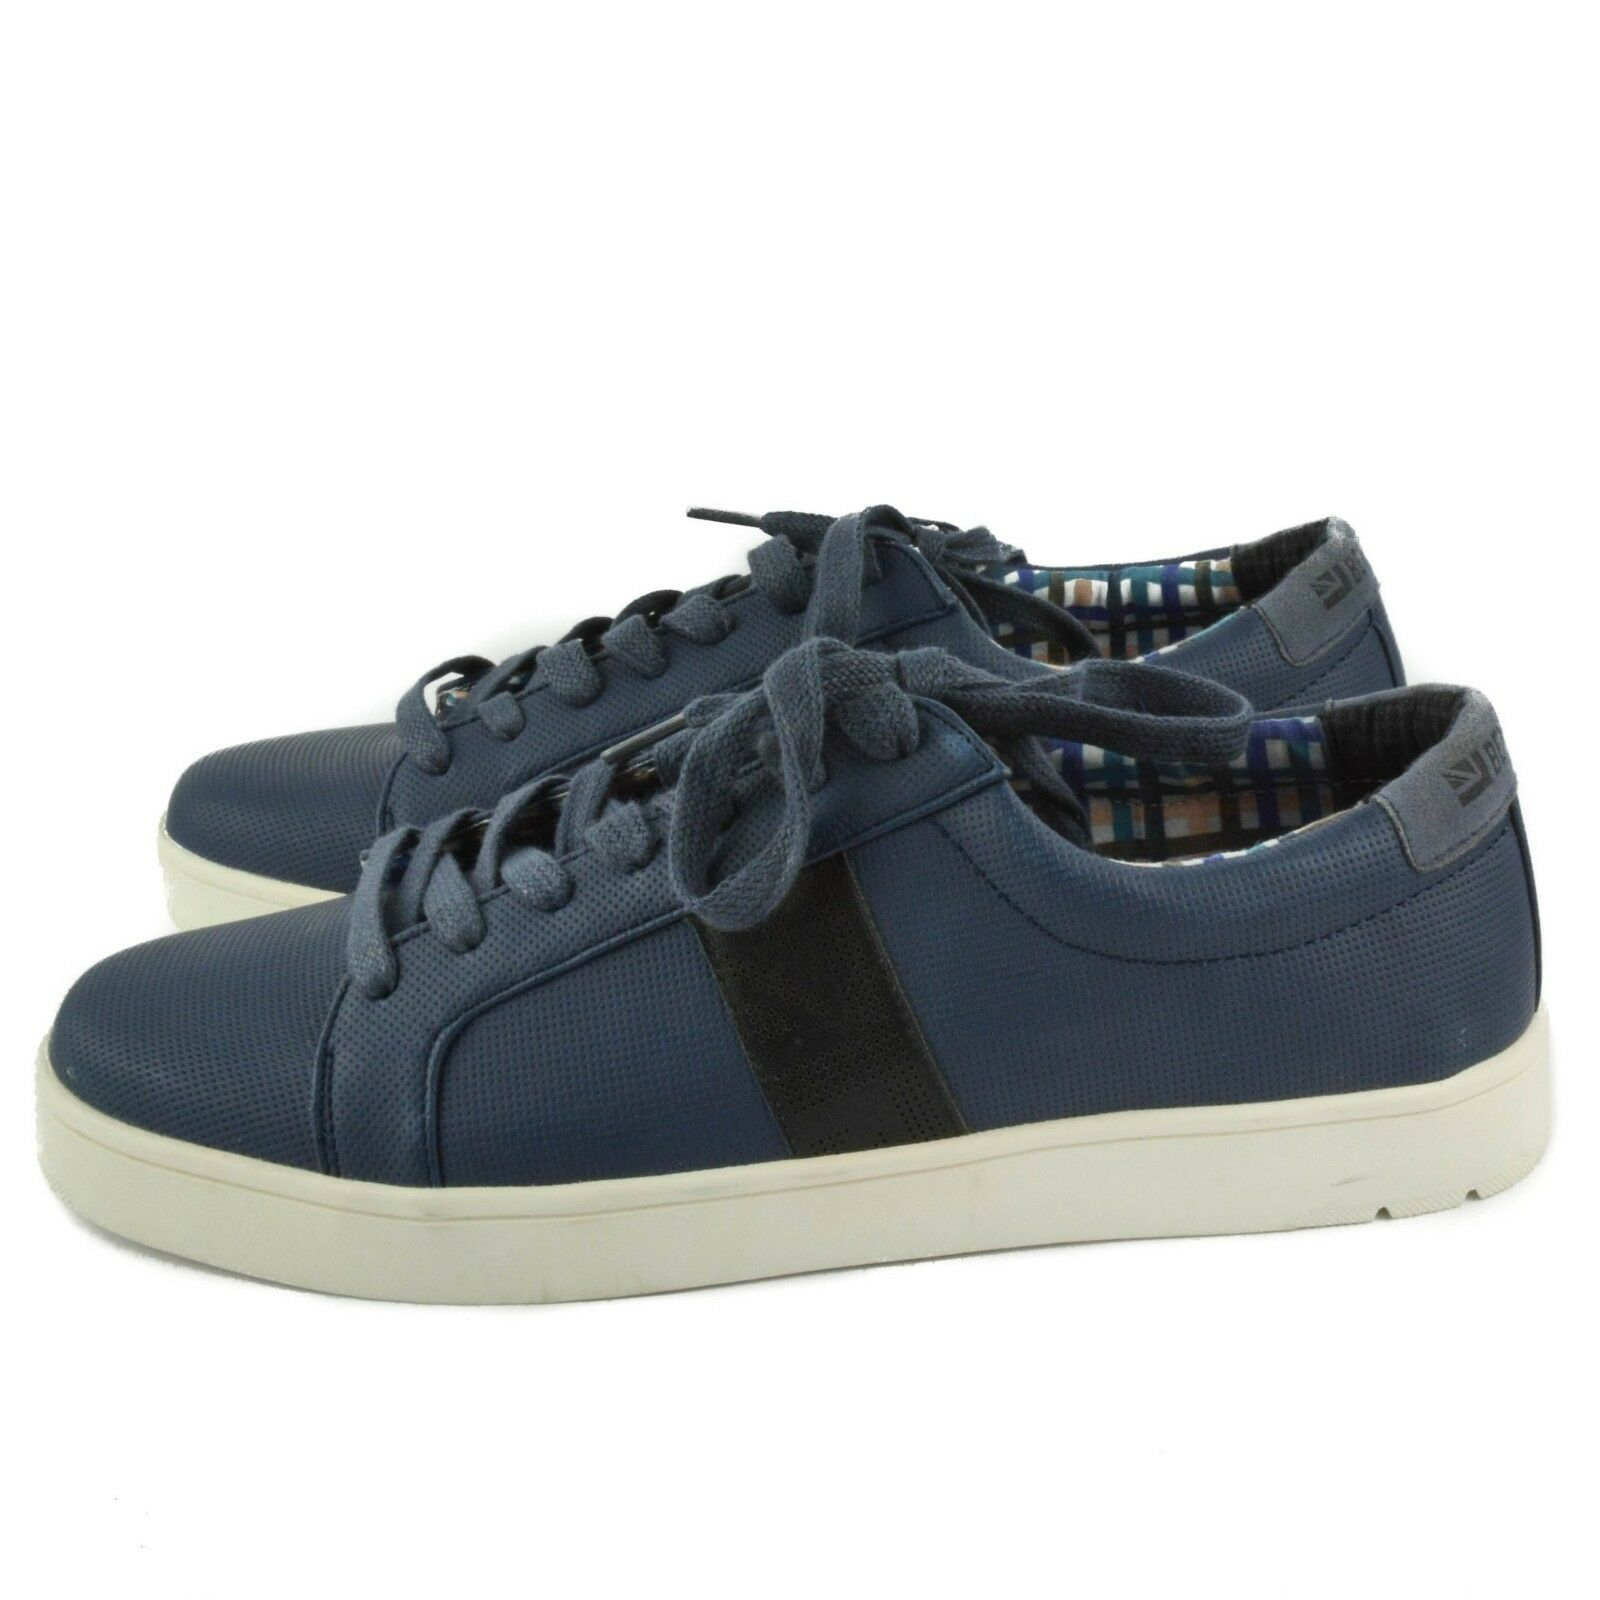 Ben Sherman Ashton navy sneakers size 11